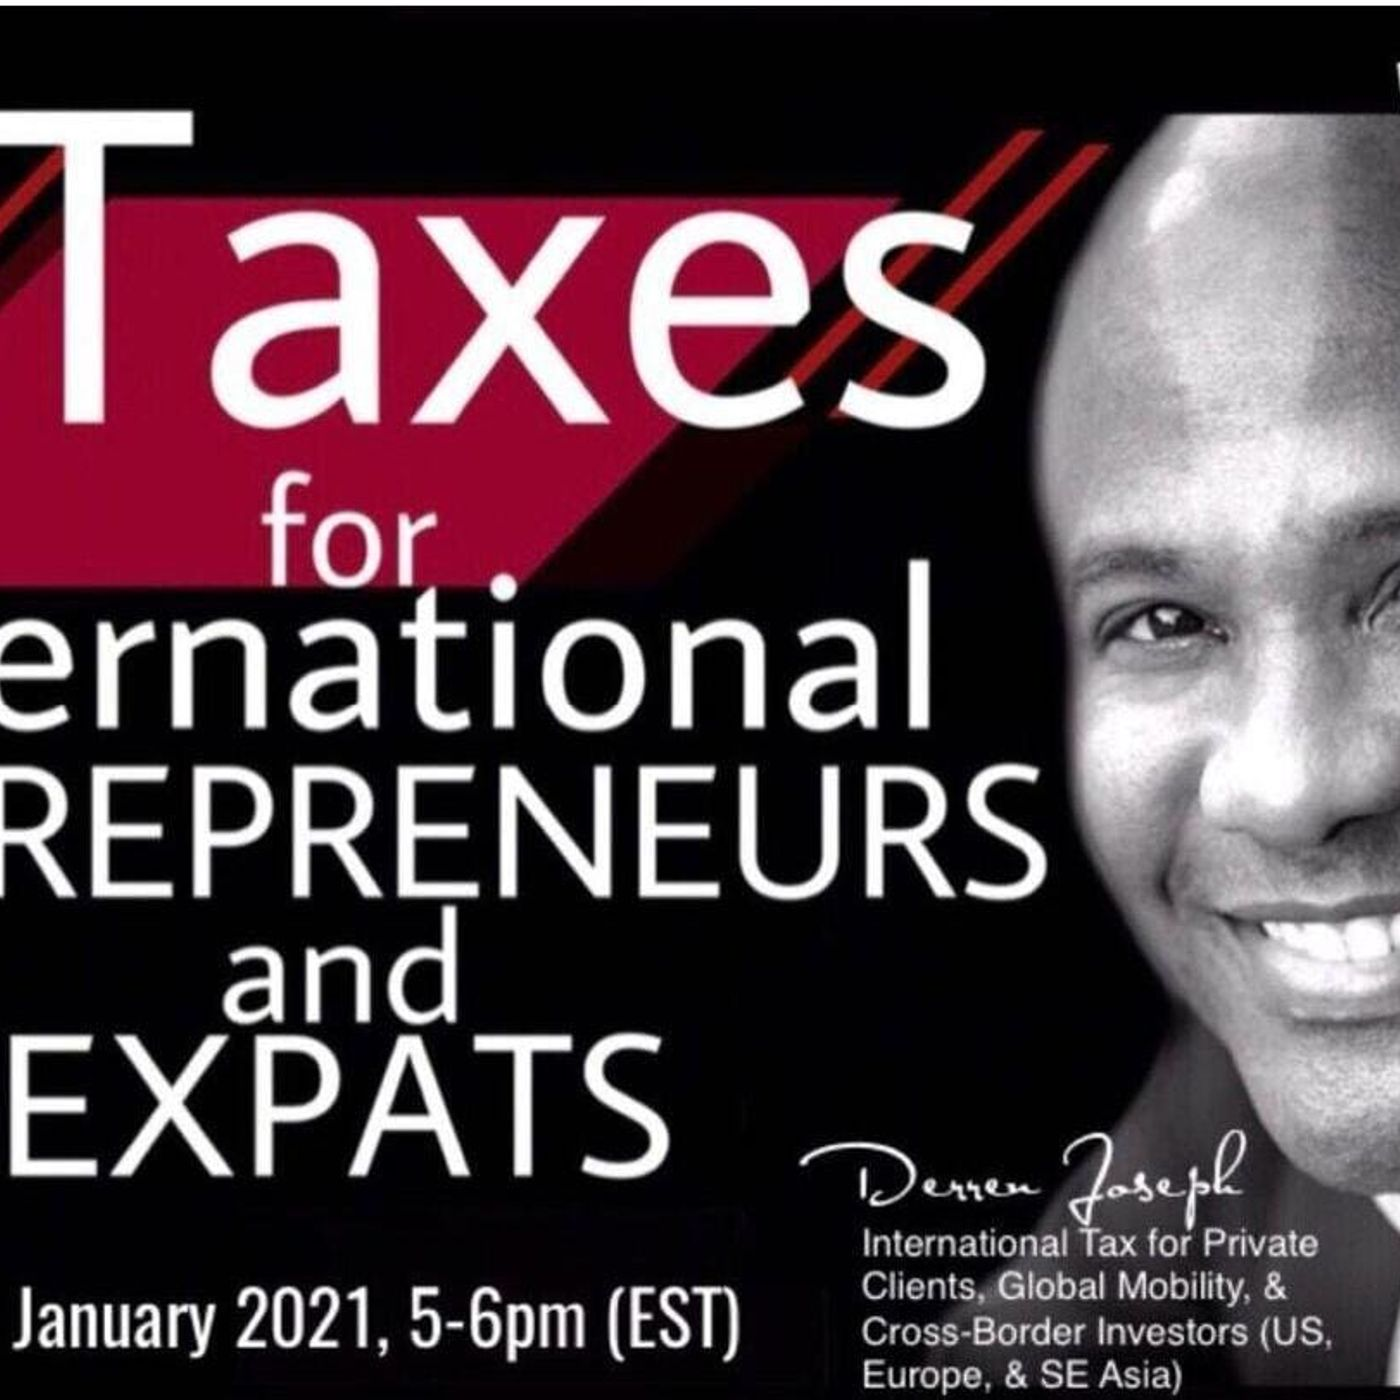 [ HTJ Podcast ] U.S. TAXES INTERNATIONAL ENTREPRENEUR AND EXPAT 20th January 2021